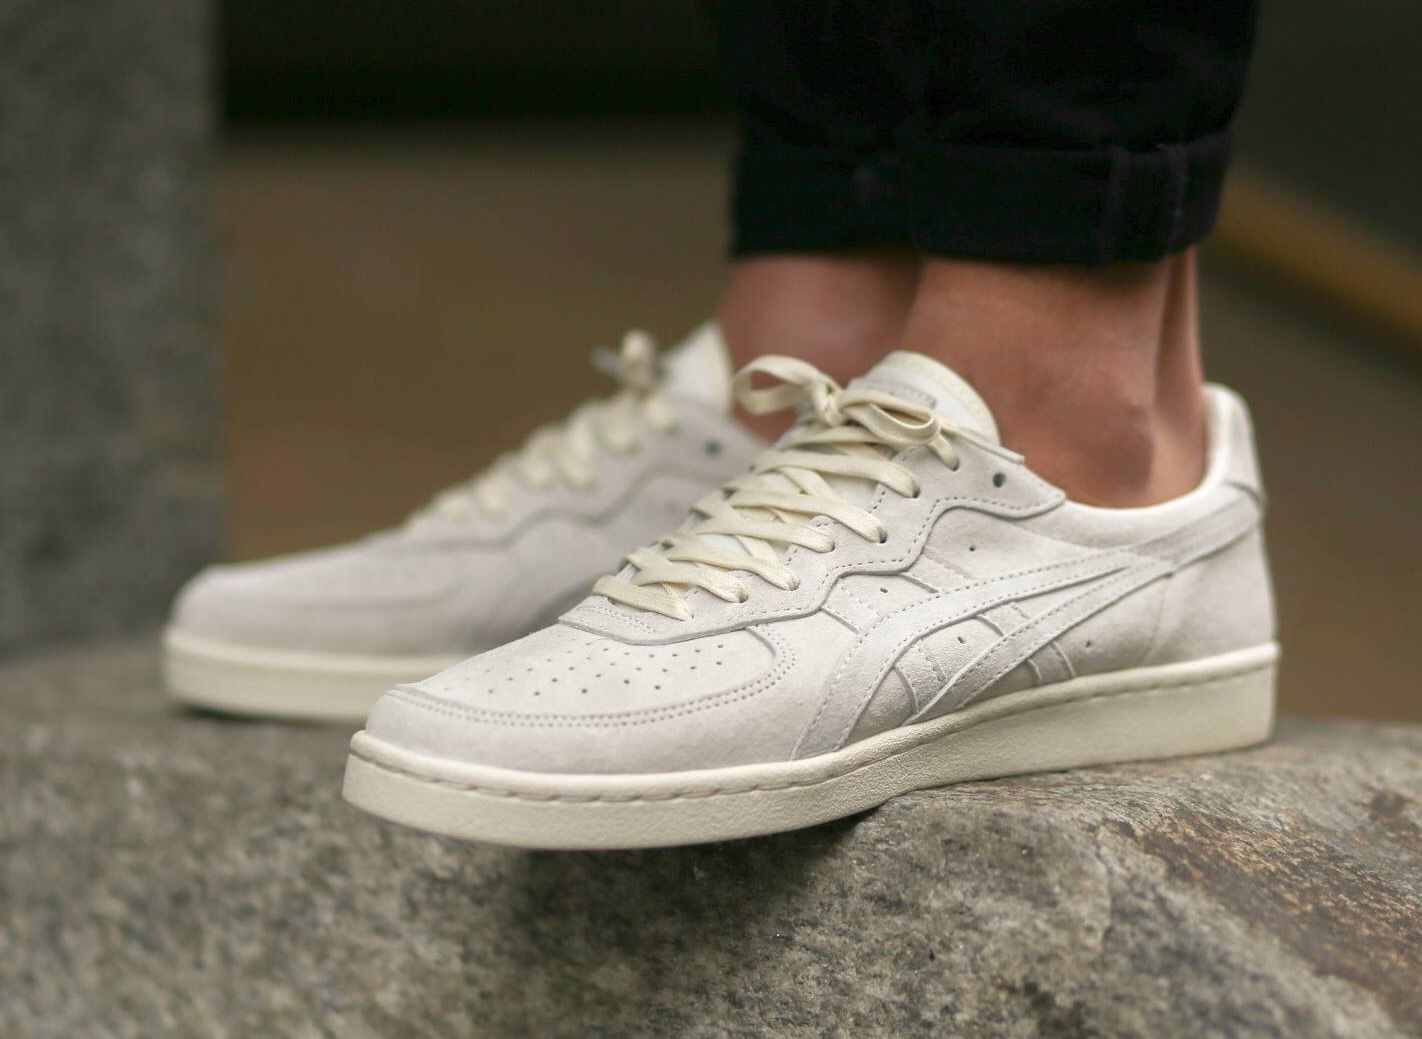 quality design 04ead d8d51 Onitsuka Tiger GSM | - footwear - in 2019 | Sneakers, Shoes ...